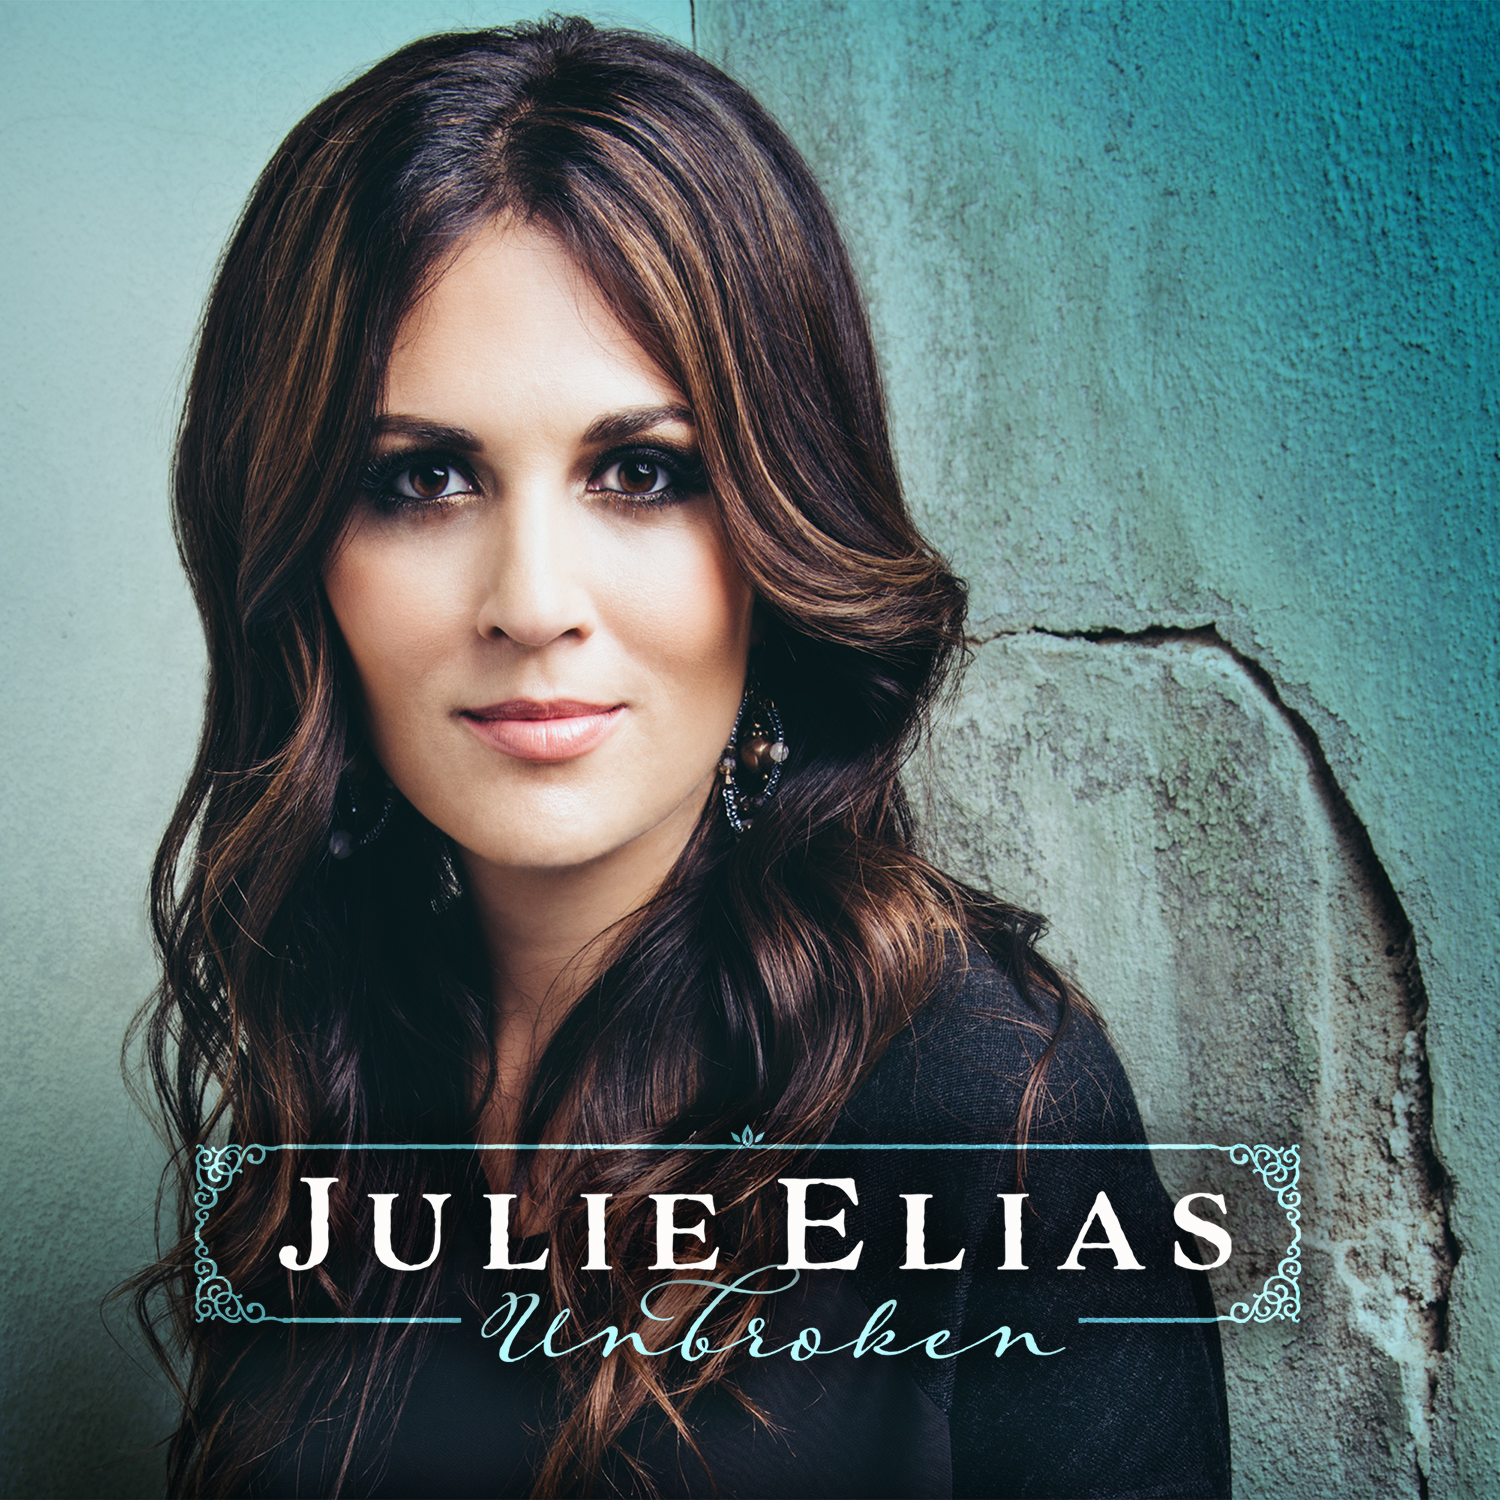 """Photo of Julie Alias' Project """"Unbroken"""" Inspires Listeners With Hope"""